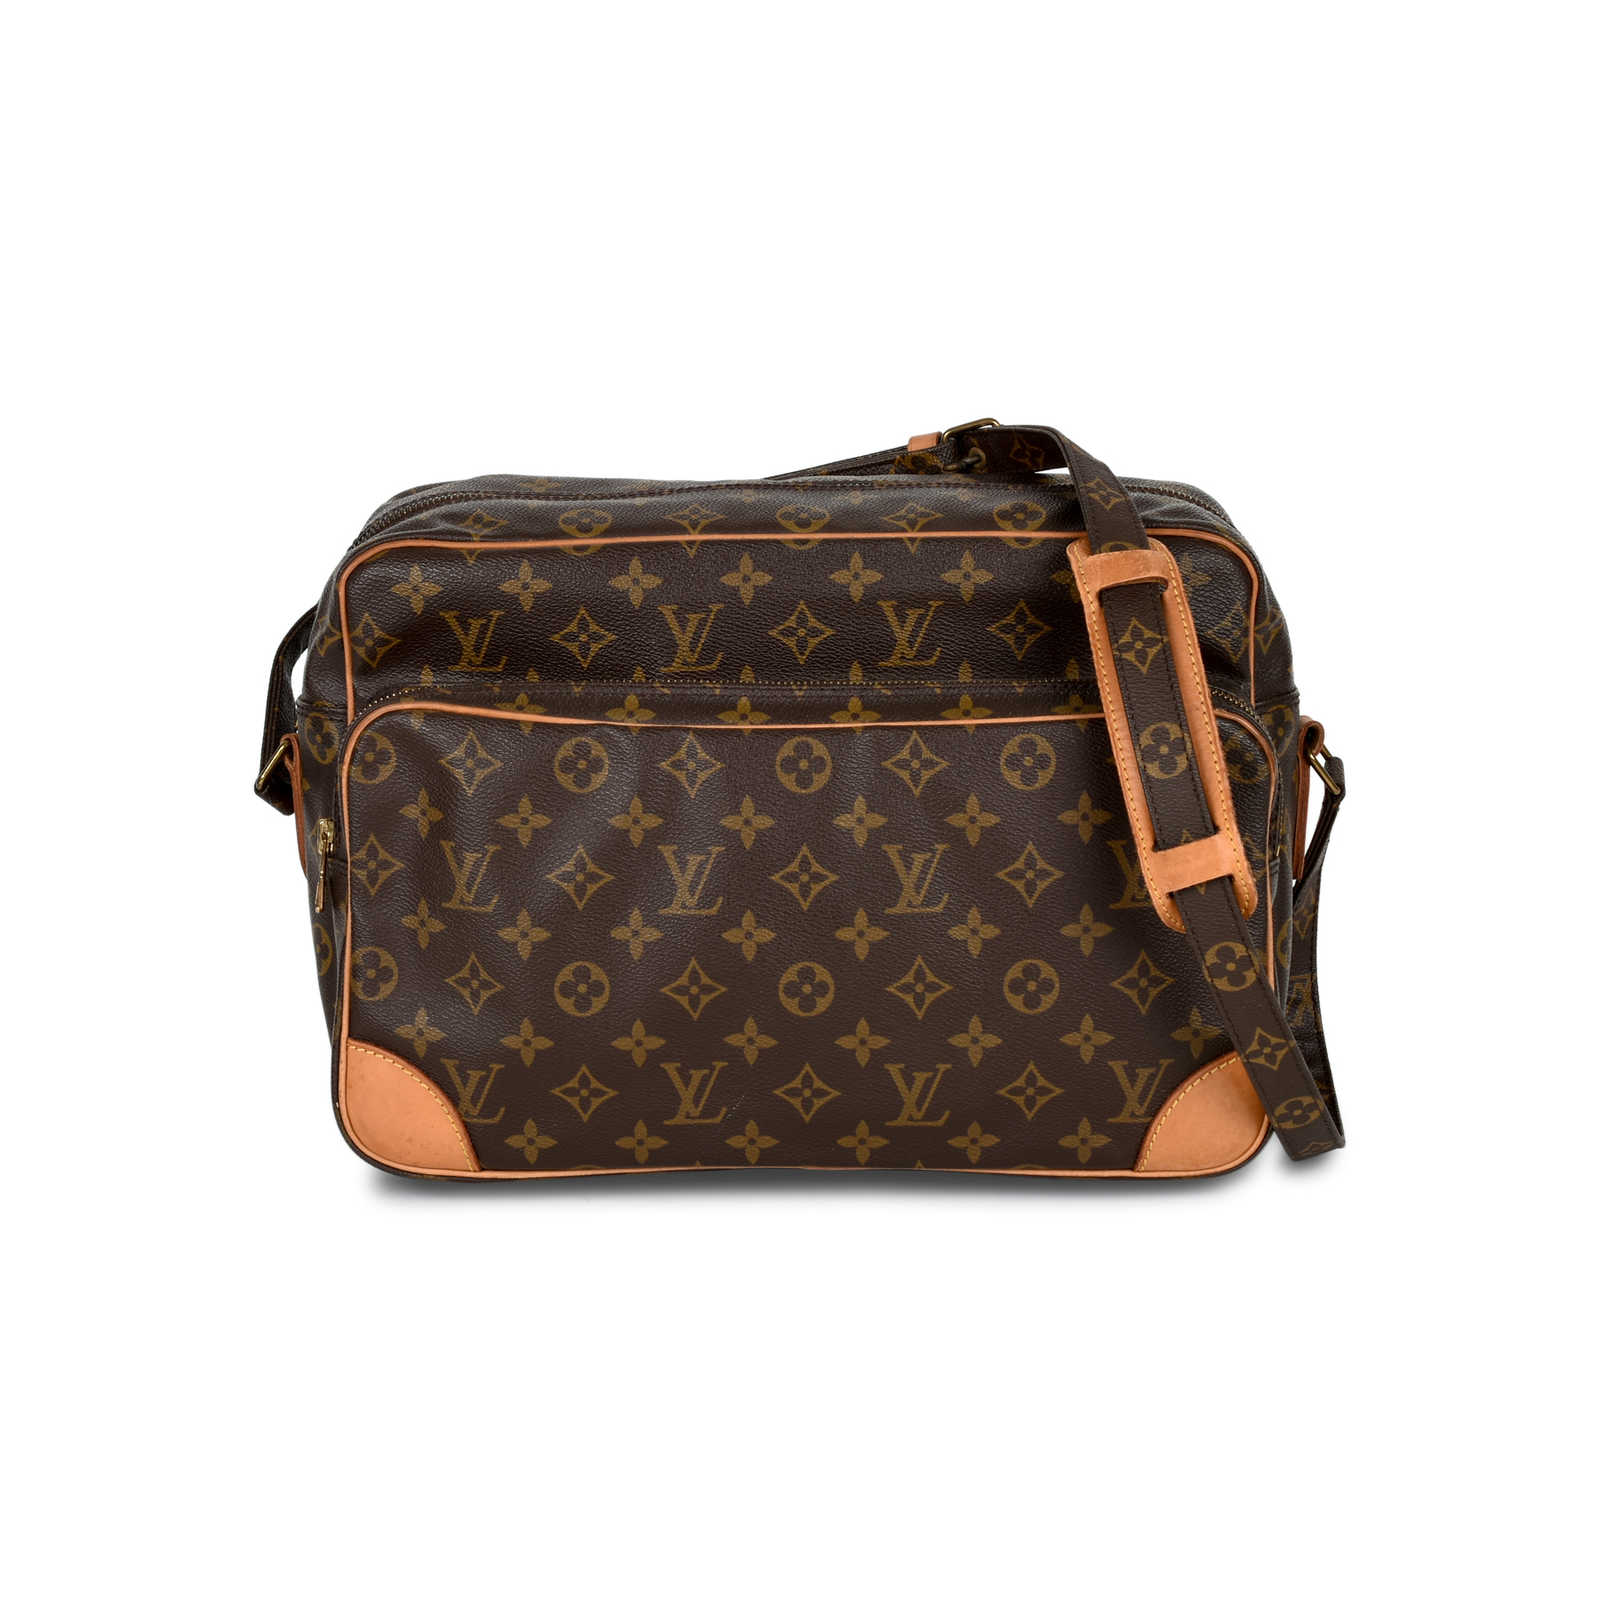 e9ed82c18aba Tap to expand · Authentic Second Hand Louis Vuitton Monogram Camera Bag  (PSS-430-00001) ...